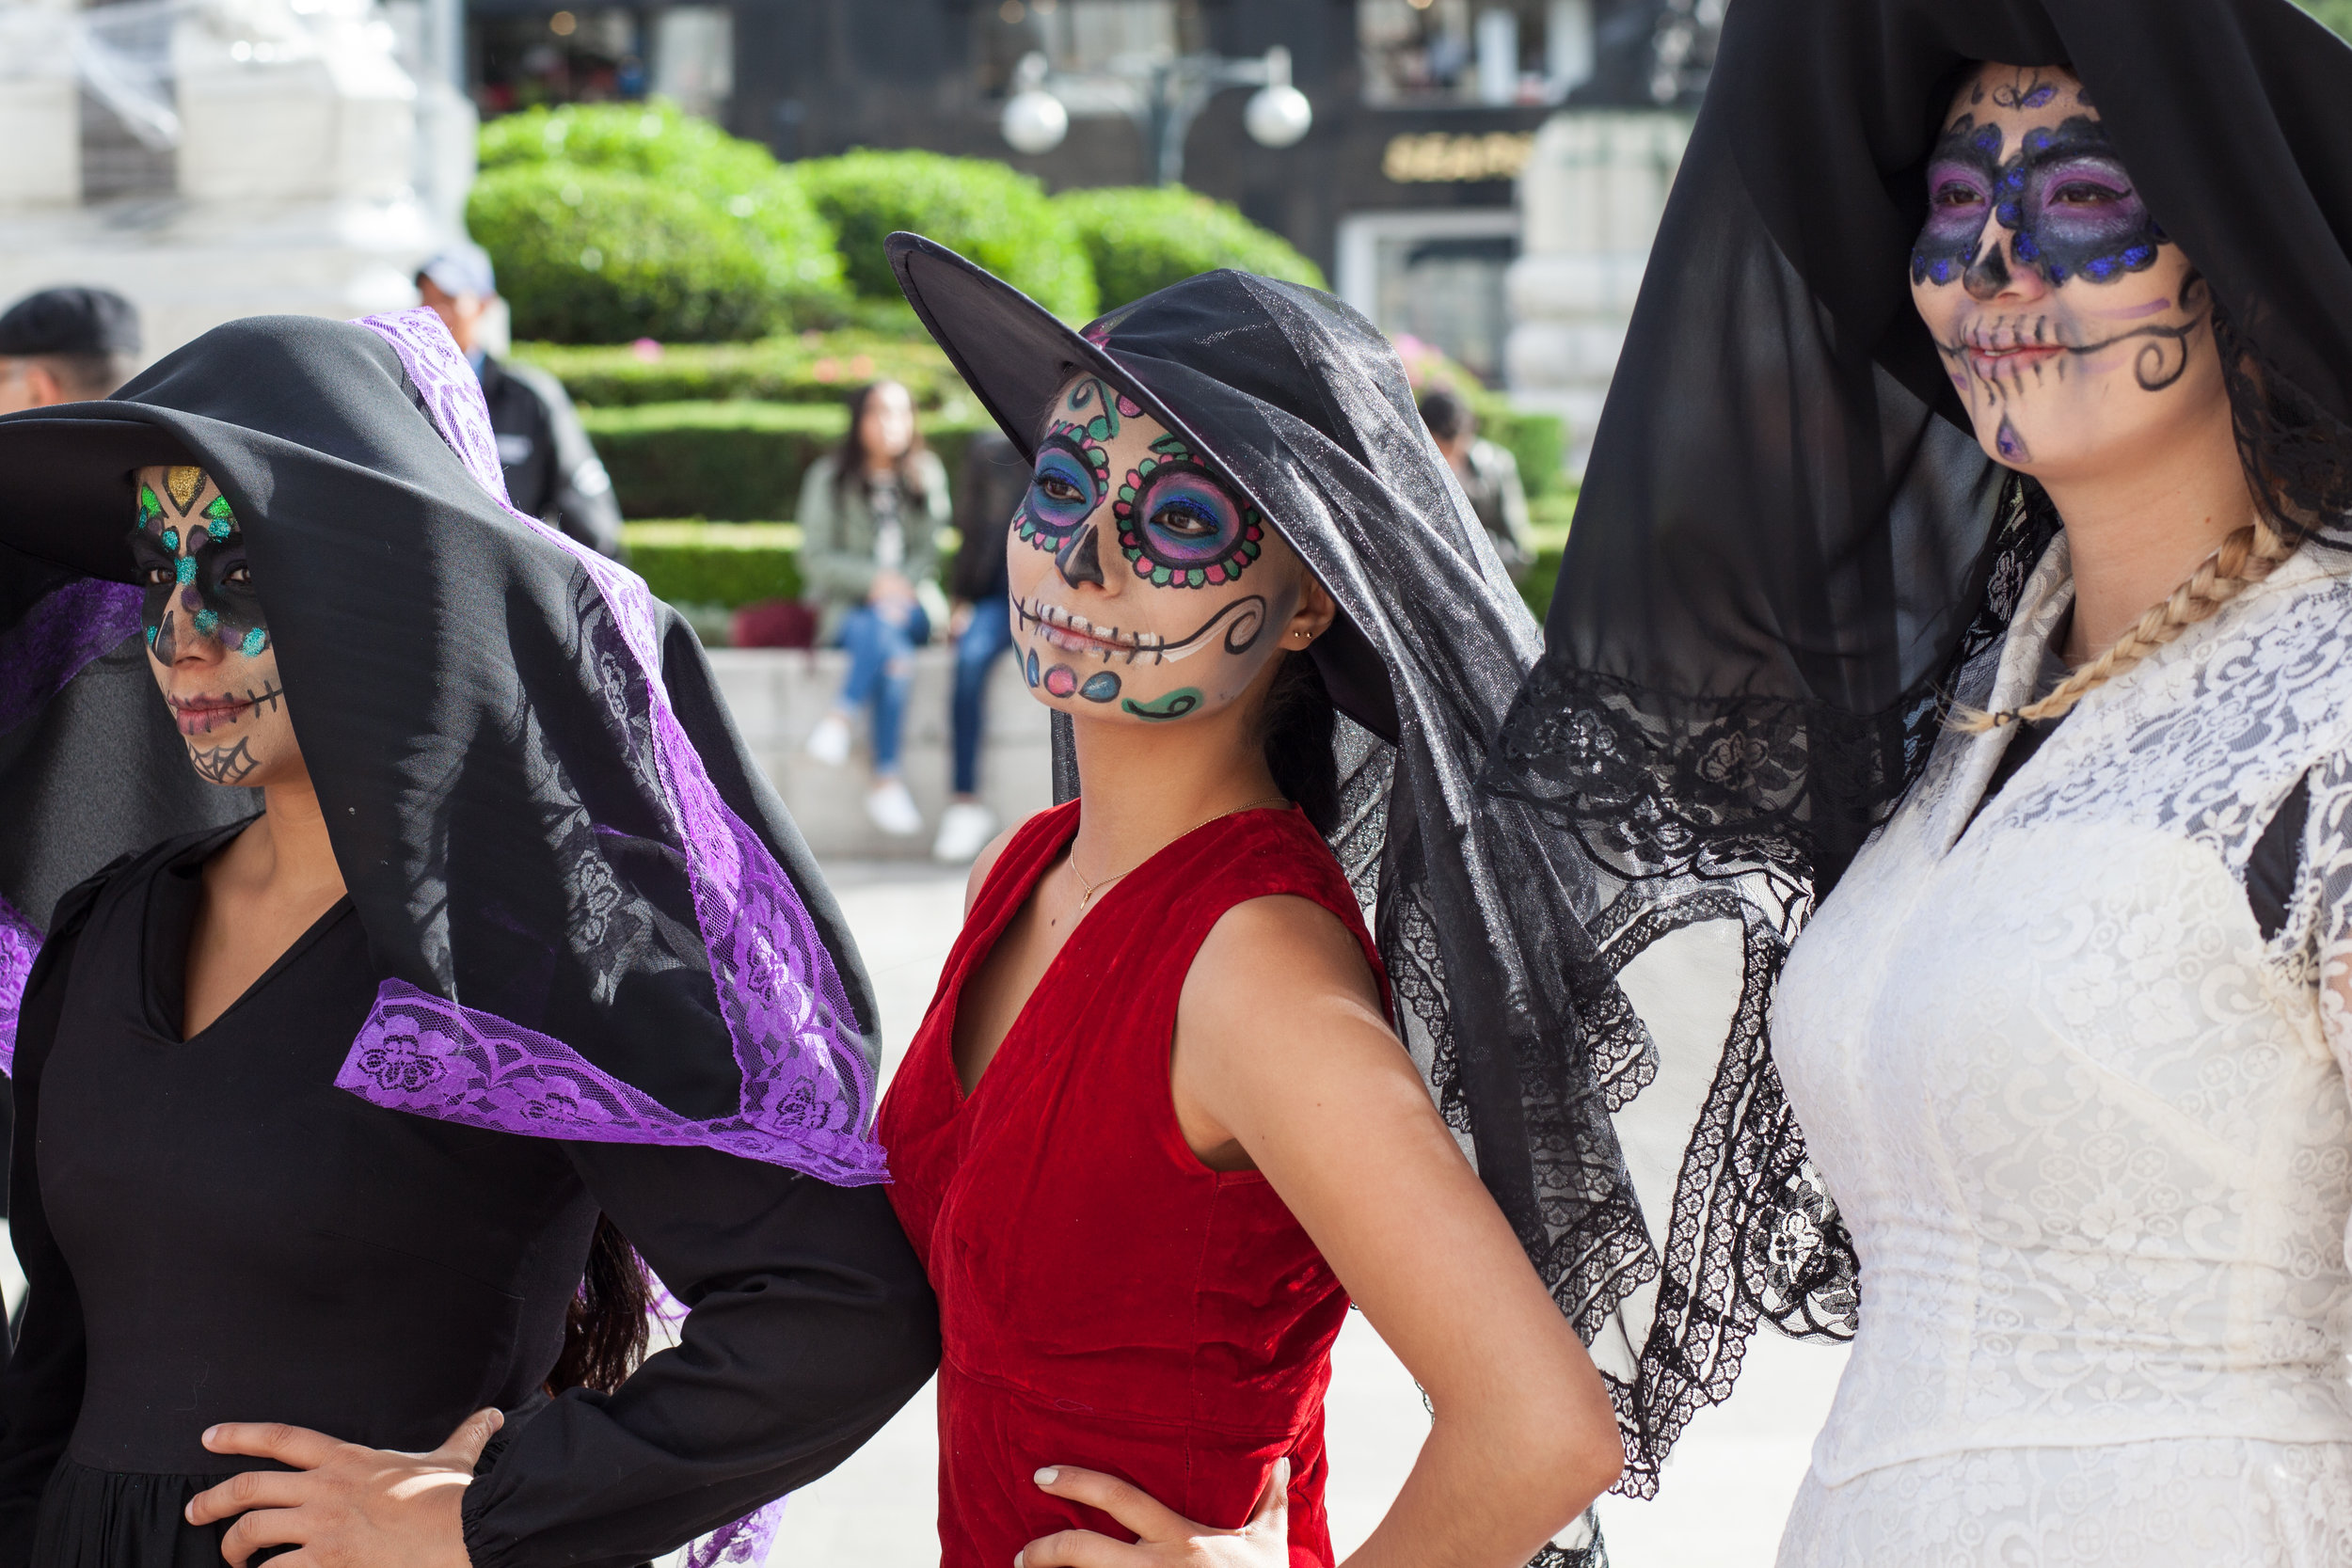 Women in fancy dress in Mexico City.